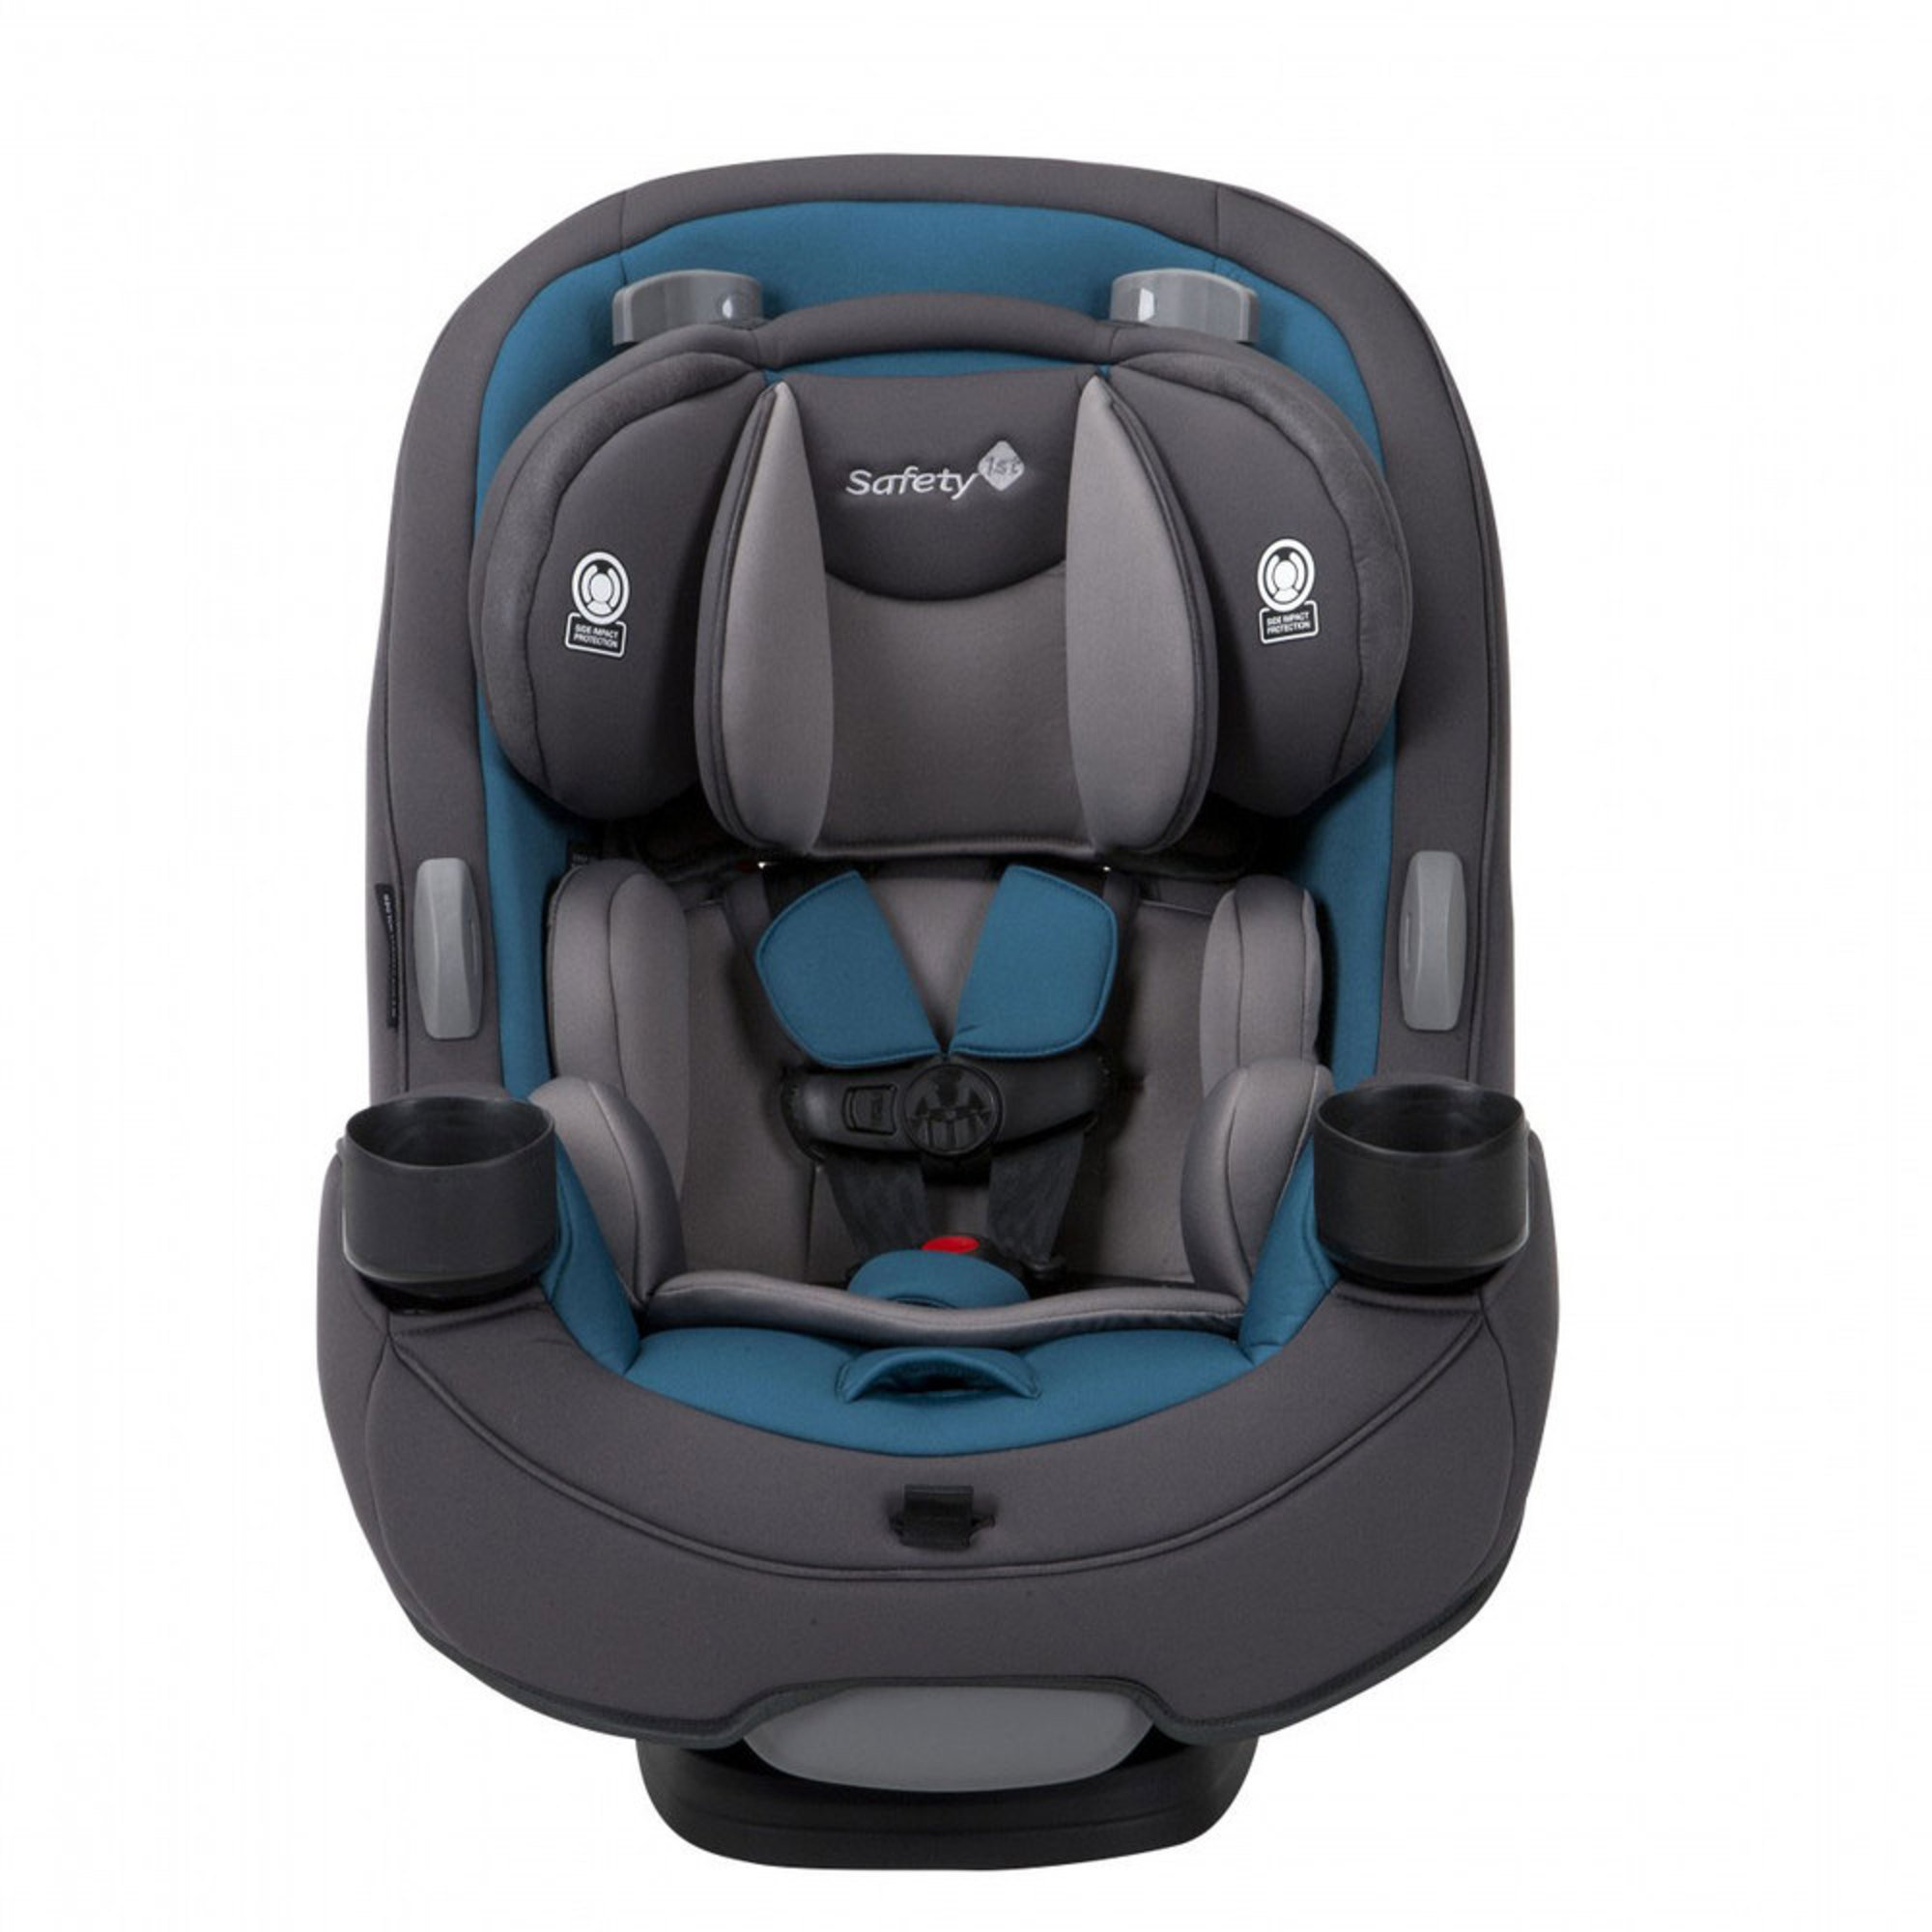 safety 1st grow go convertible car seat blue coral convertible car seats baby kids. Black Bedroom Furniture Sets. Home Design Ideas